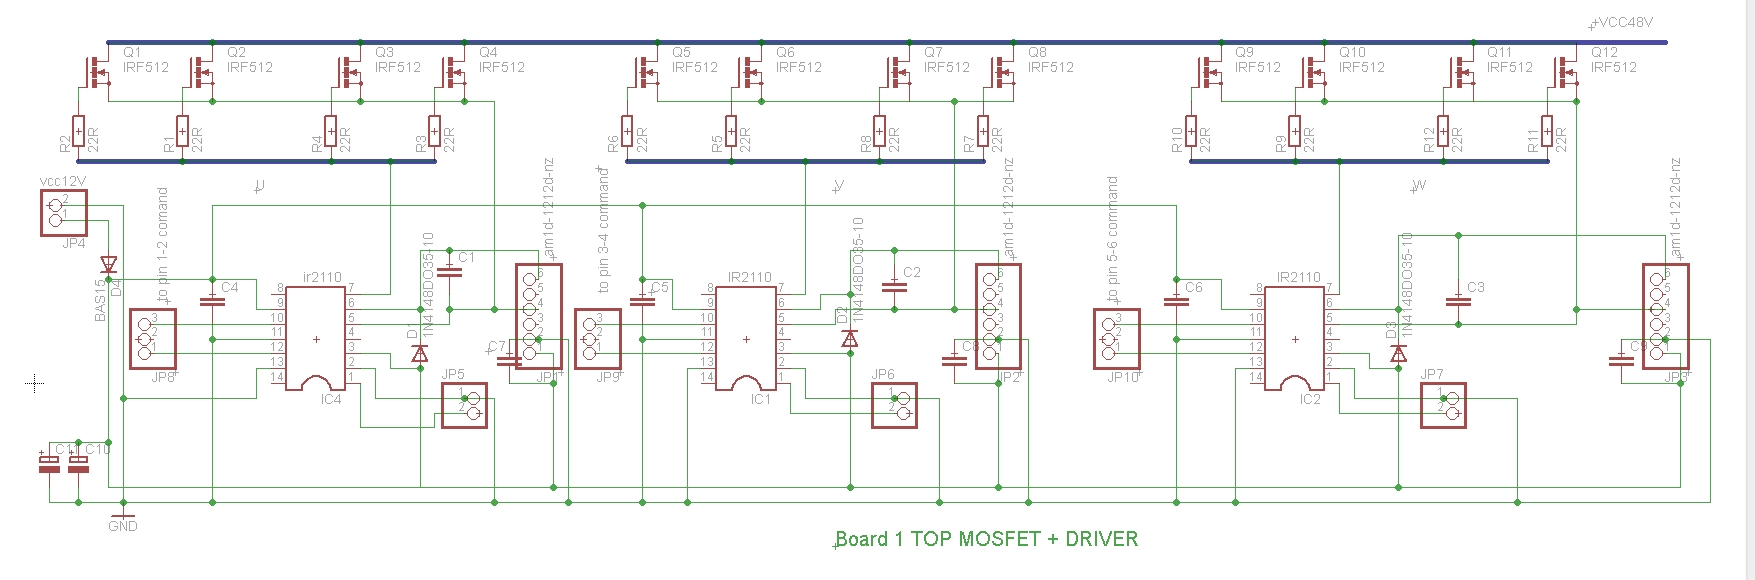 brushless controller schematic « Brushless motors, 3Phase